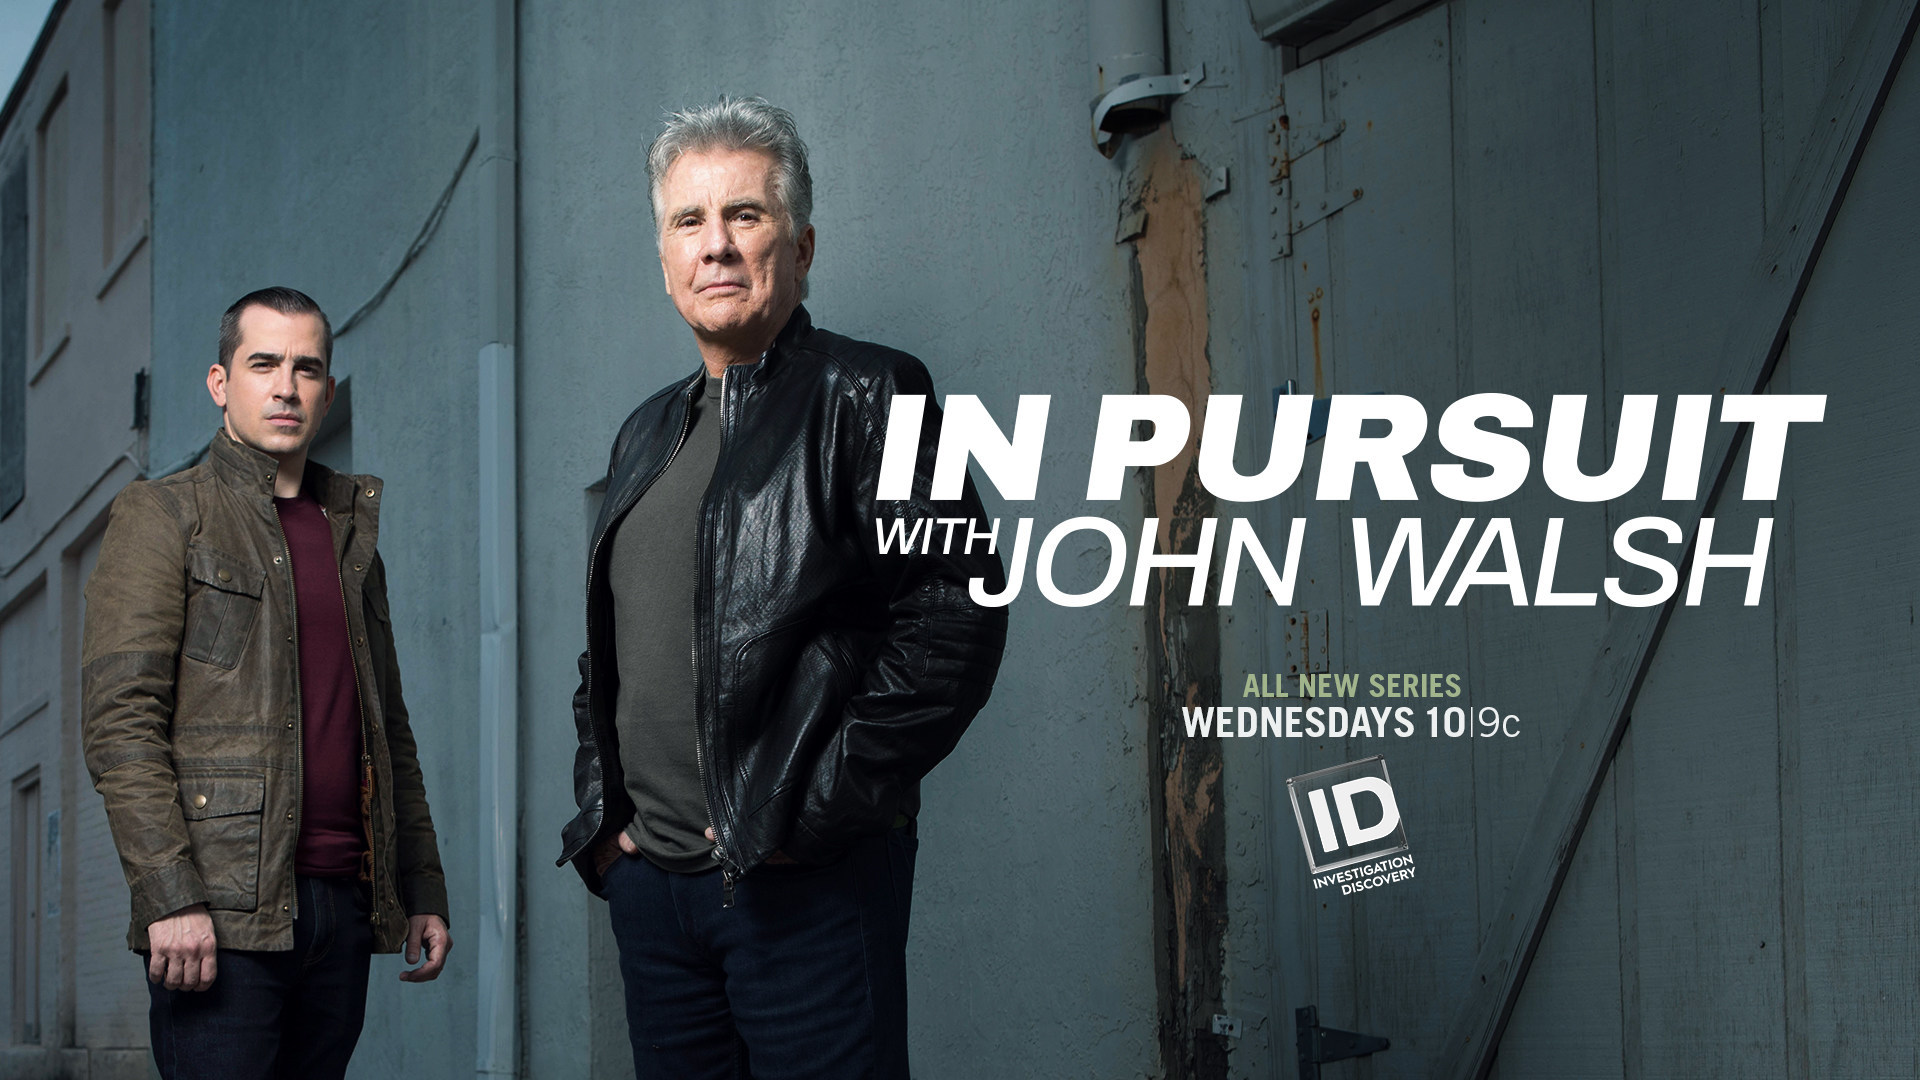 Investigation Discovery Announces Arrest Of Fugitive Wanted For Murder Thanks To Tip From In Pursuit With John Walsh Hours, address, callahan's of calabash reviews: investigation discovery announces arrest of fugitive wanted for murder thanks to tip from in pursuit with john walsh